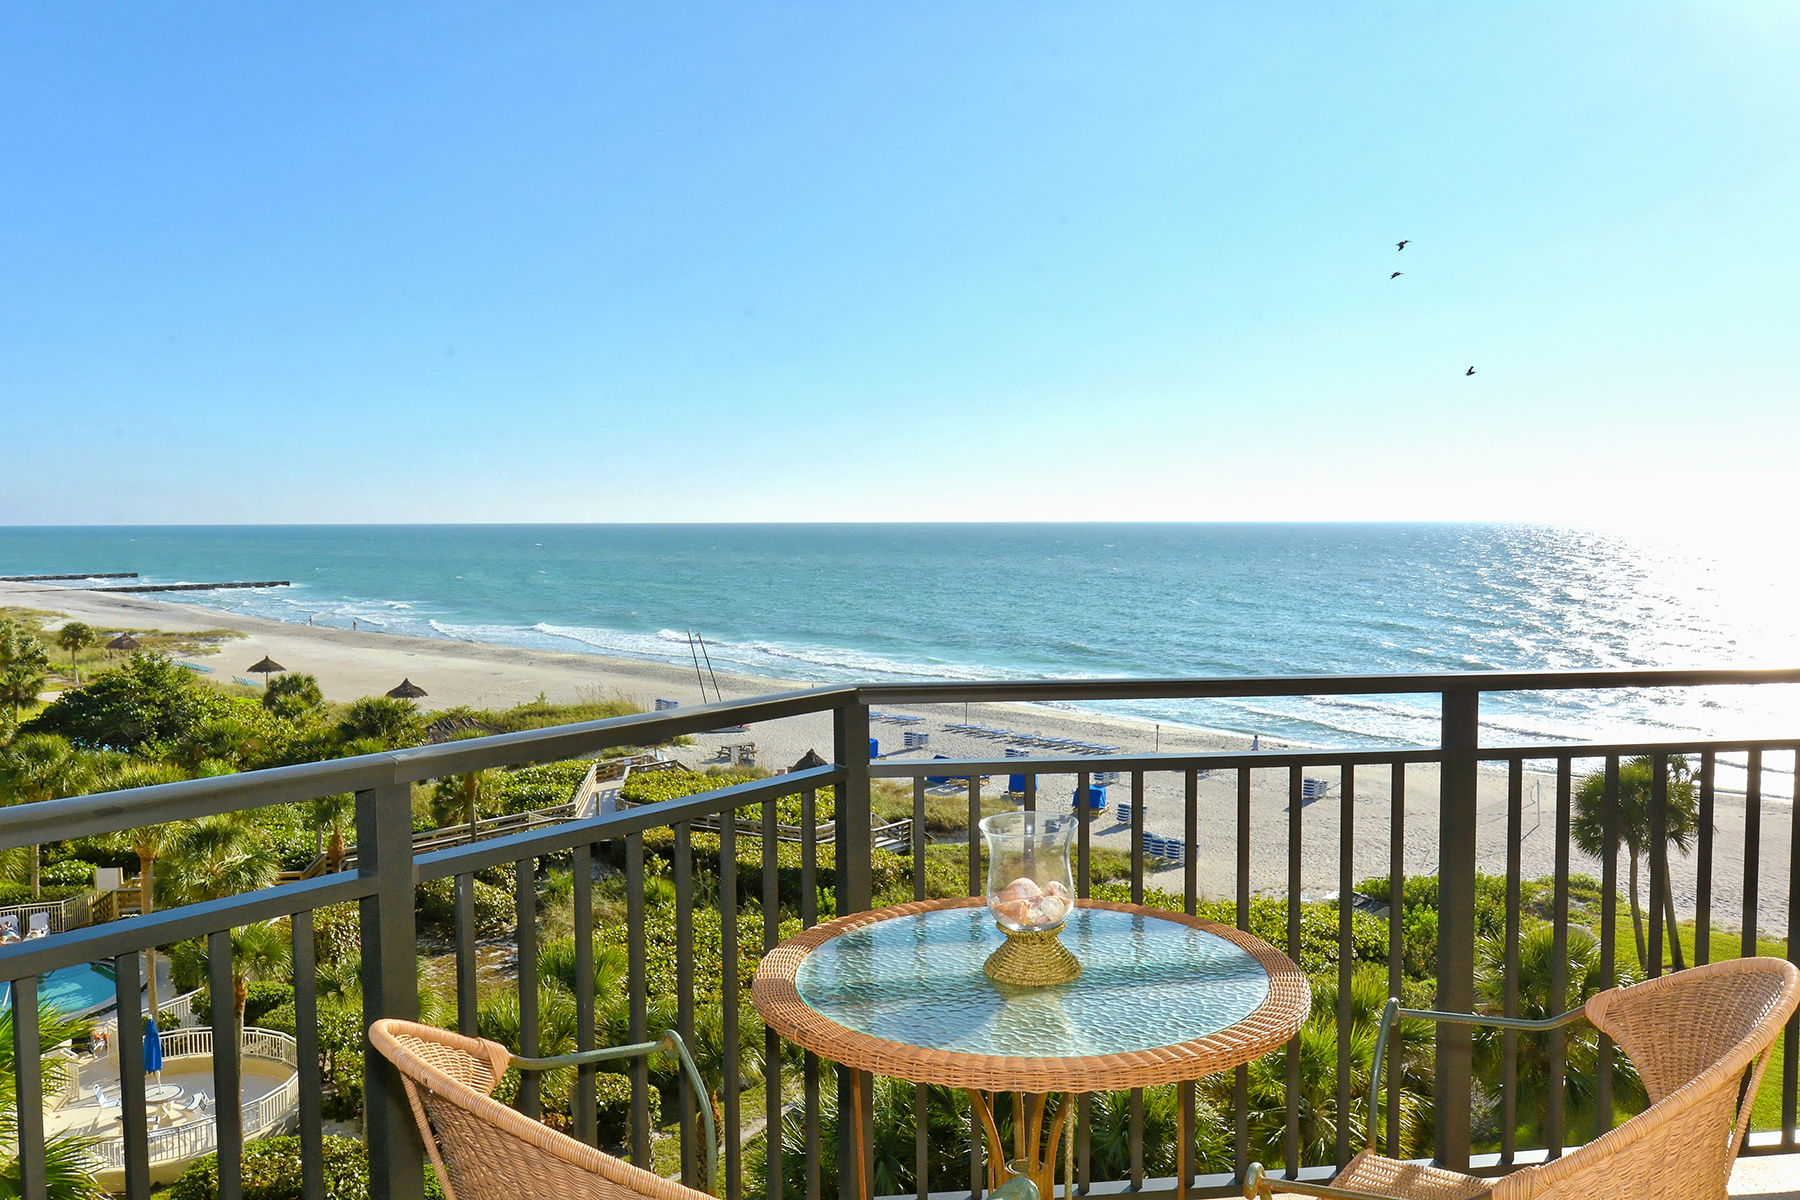 Condominium for Sale at ISLANDS WEST 2525 Gulf Of Mexico Dr 6C Longboat Key, Florida, 34228 United States